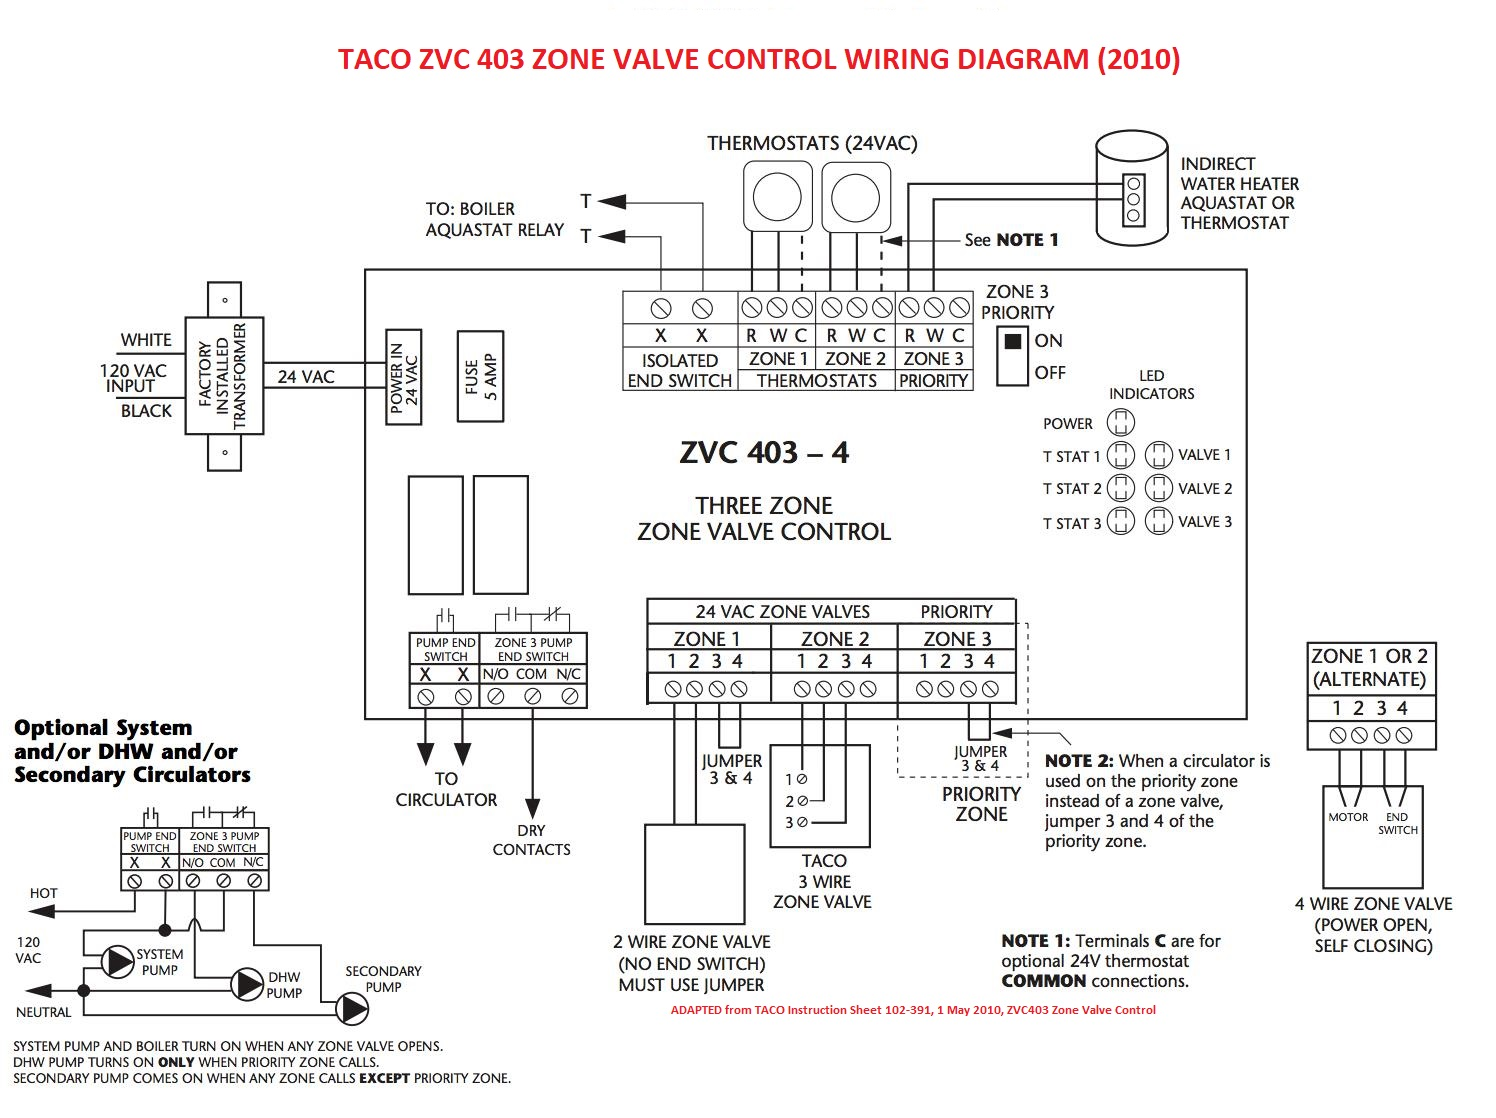 Zone valve wiring installation instructions guide to heating taci zvc493 wiring diagram click to enlarge at inspectapedia asfbconference2016 Choice Image